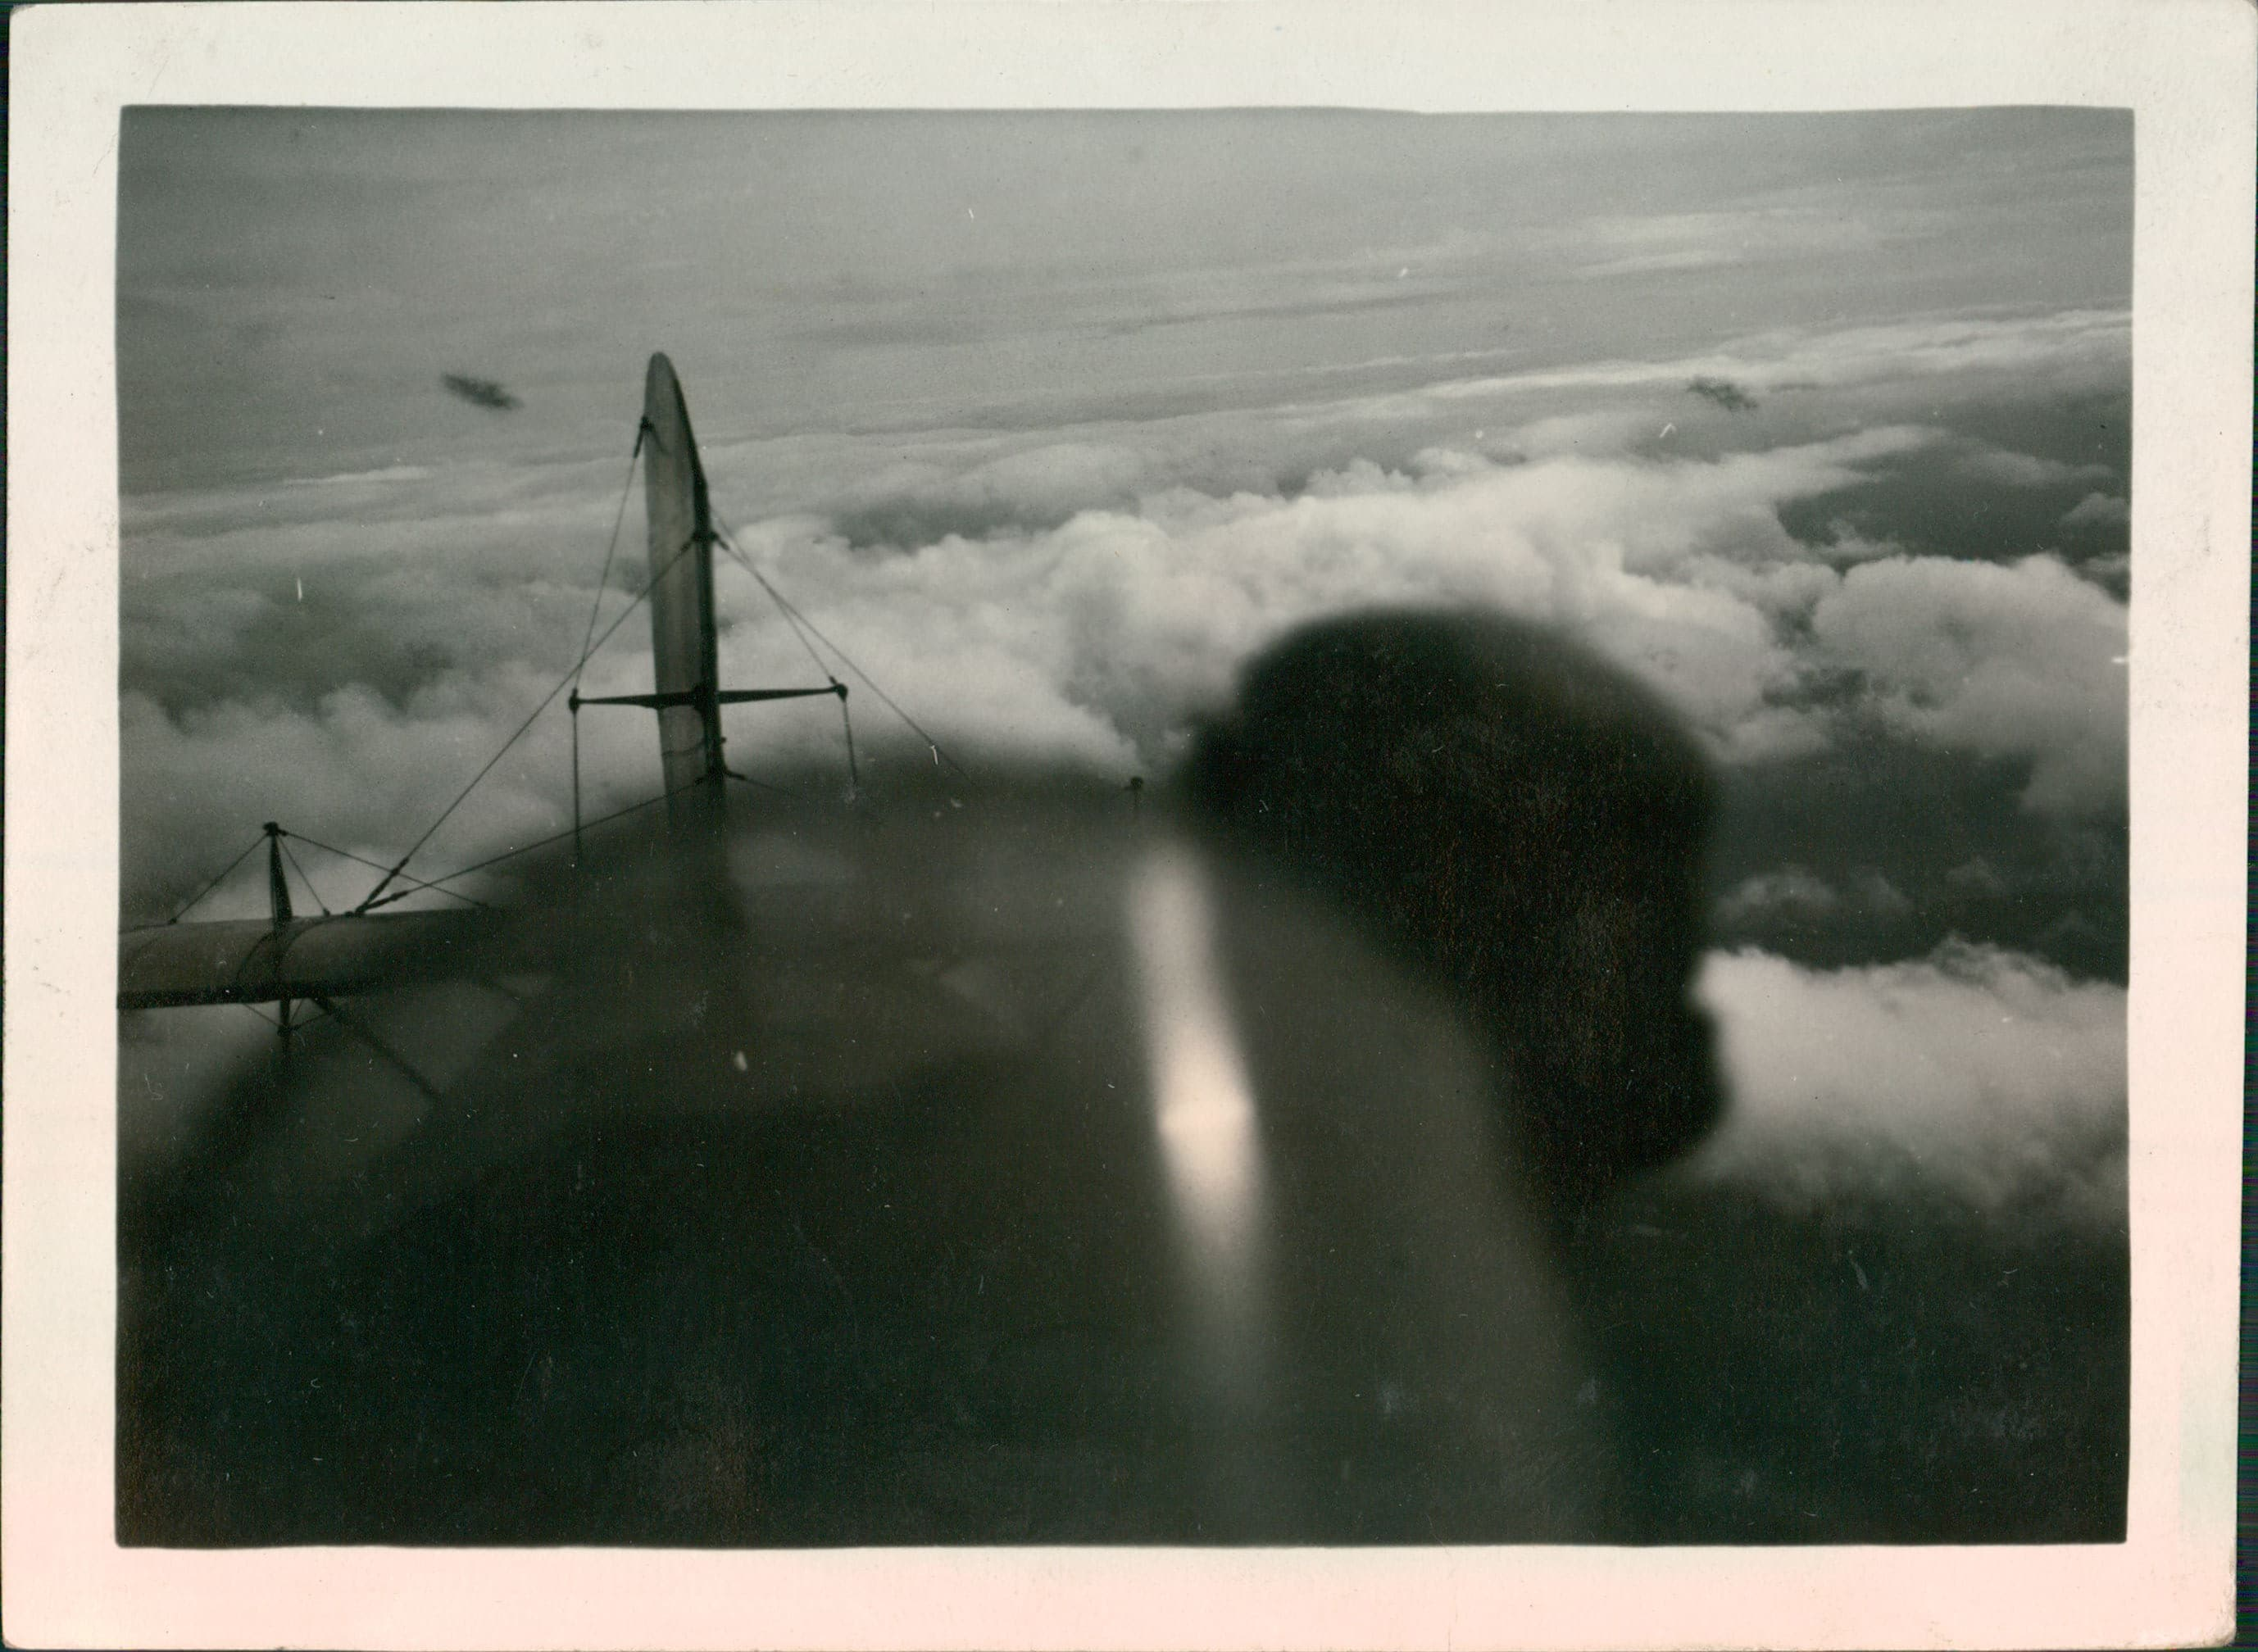 biplane pilot and plane's tail above clouds.